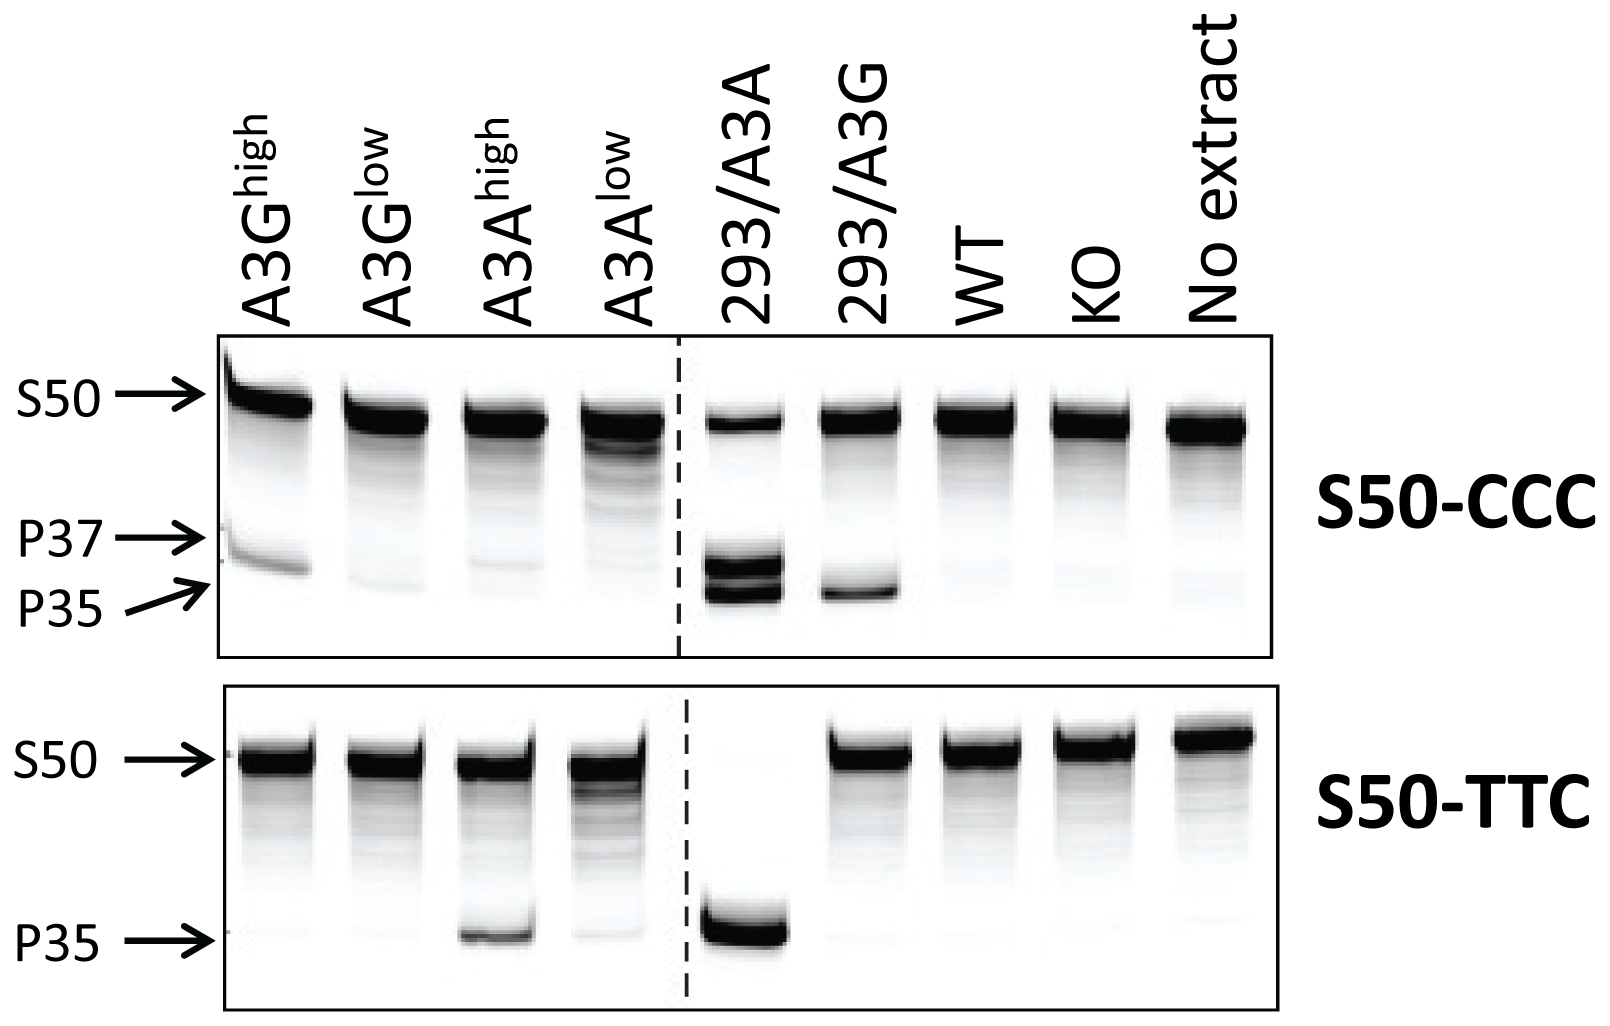 Cellular lysates from splenocytes derived from uninfected transgenic, wild type (BL/6) or mA3 knockout (KO) mice or from 293T cell lines over-expressing A3A or A3G were incubated with a 3′-fluorophore labeled 50-mer single-stranded oligonucleotide (S50) containing cytosine in the sequence context preferred by A3G (S50-CCC) or A3A (S50-TTC).